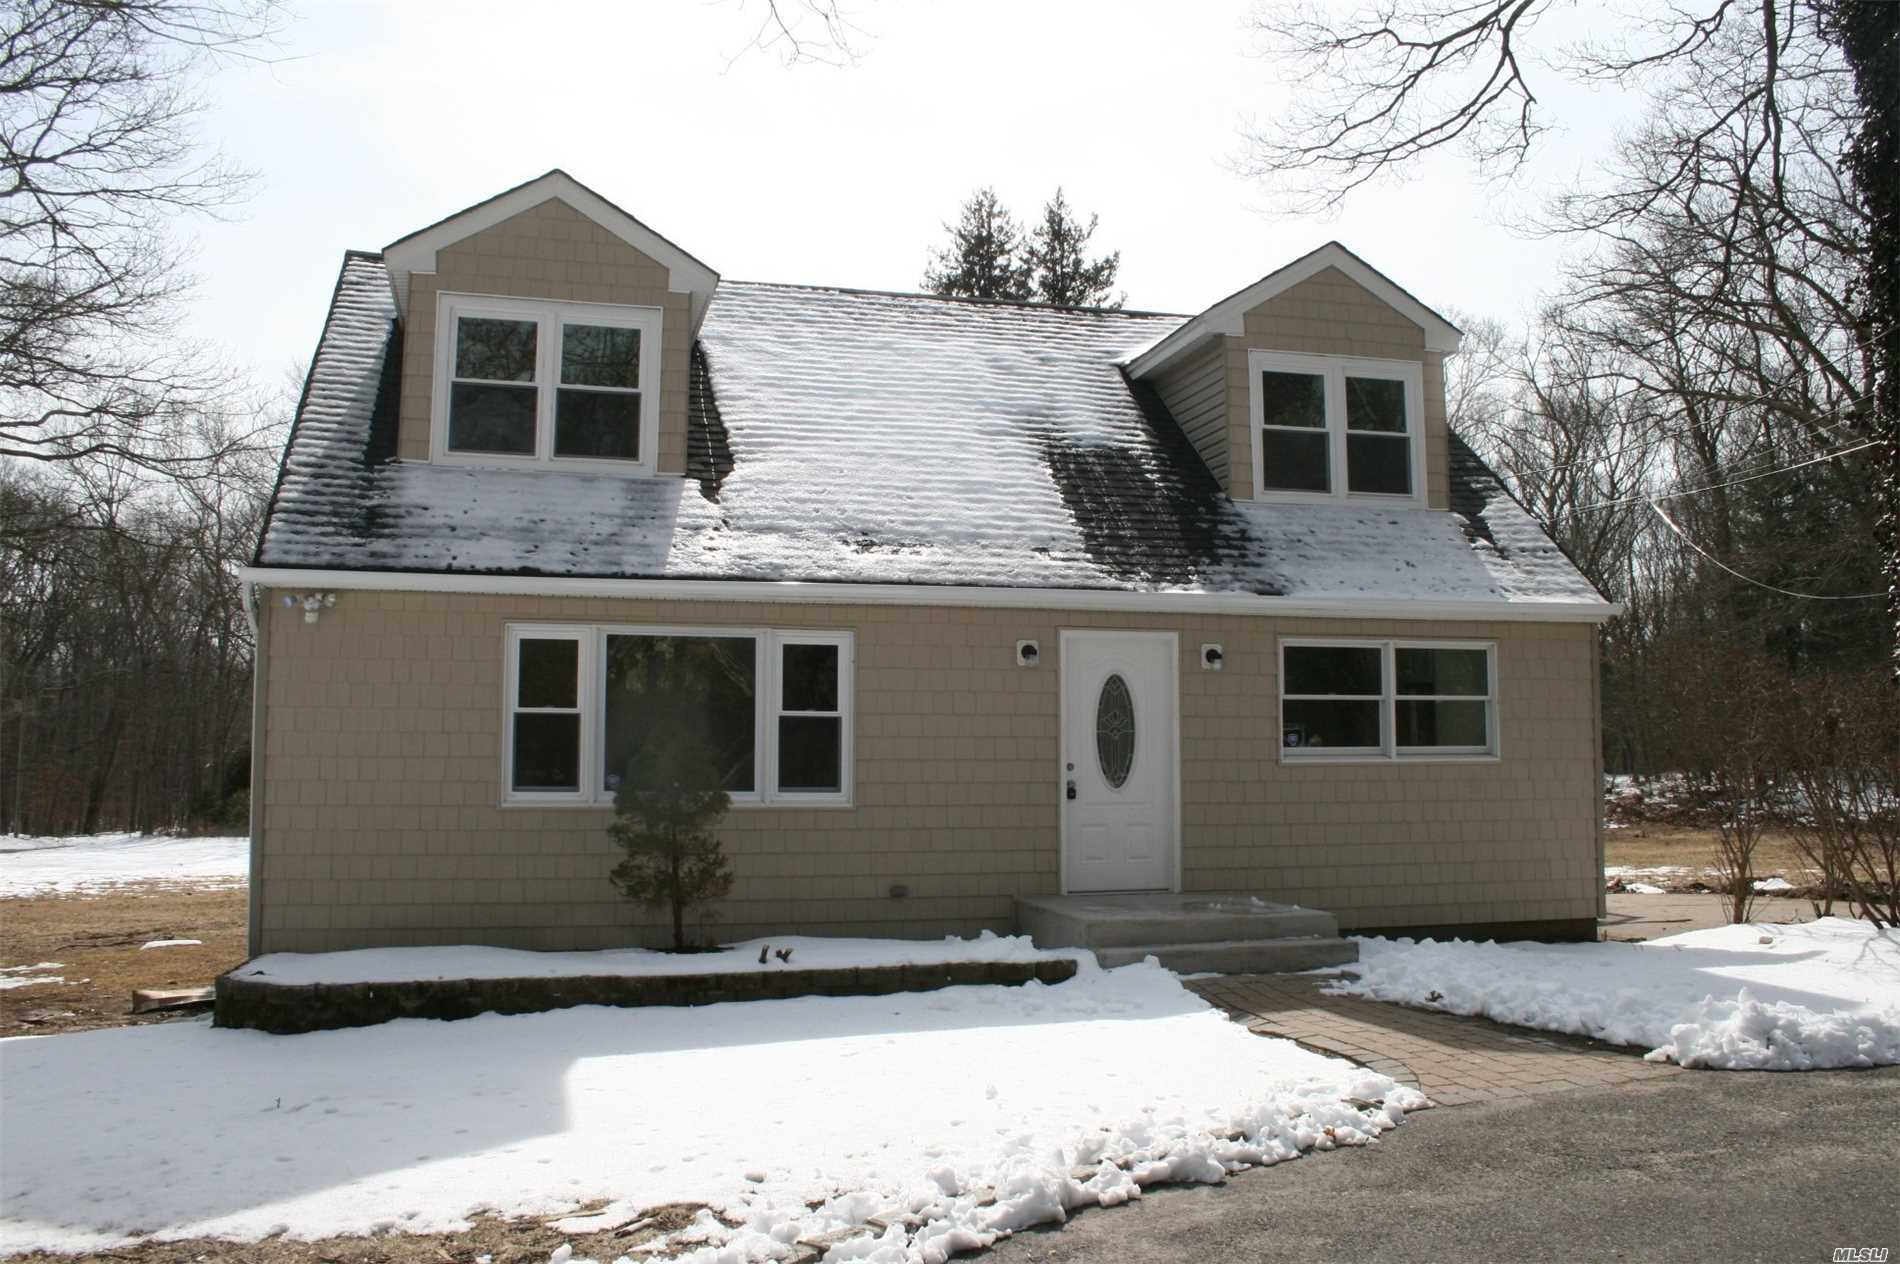 Welcome To Horse Country! Large Cape Cod W/New Roof, Siding, And Driveway! Beautiful Wood Floors, Kitchen W/Granite Countertops, Tile Backsplash, And Stainless Appliances! New Heating System! Two New Baths, 4 Large Bedrooms, And An Oversized Basement All On 1 Acre Of Property! Will Not Last!!!